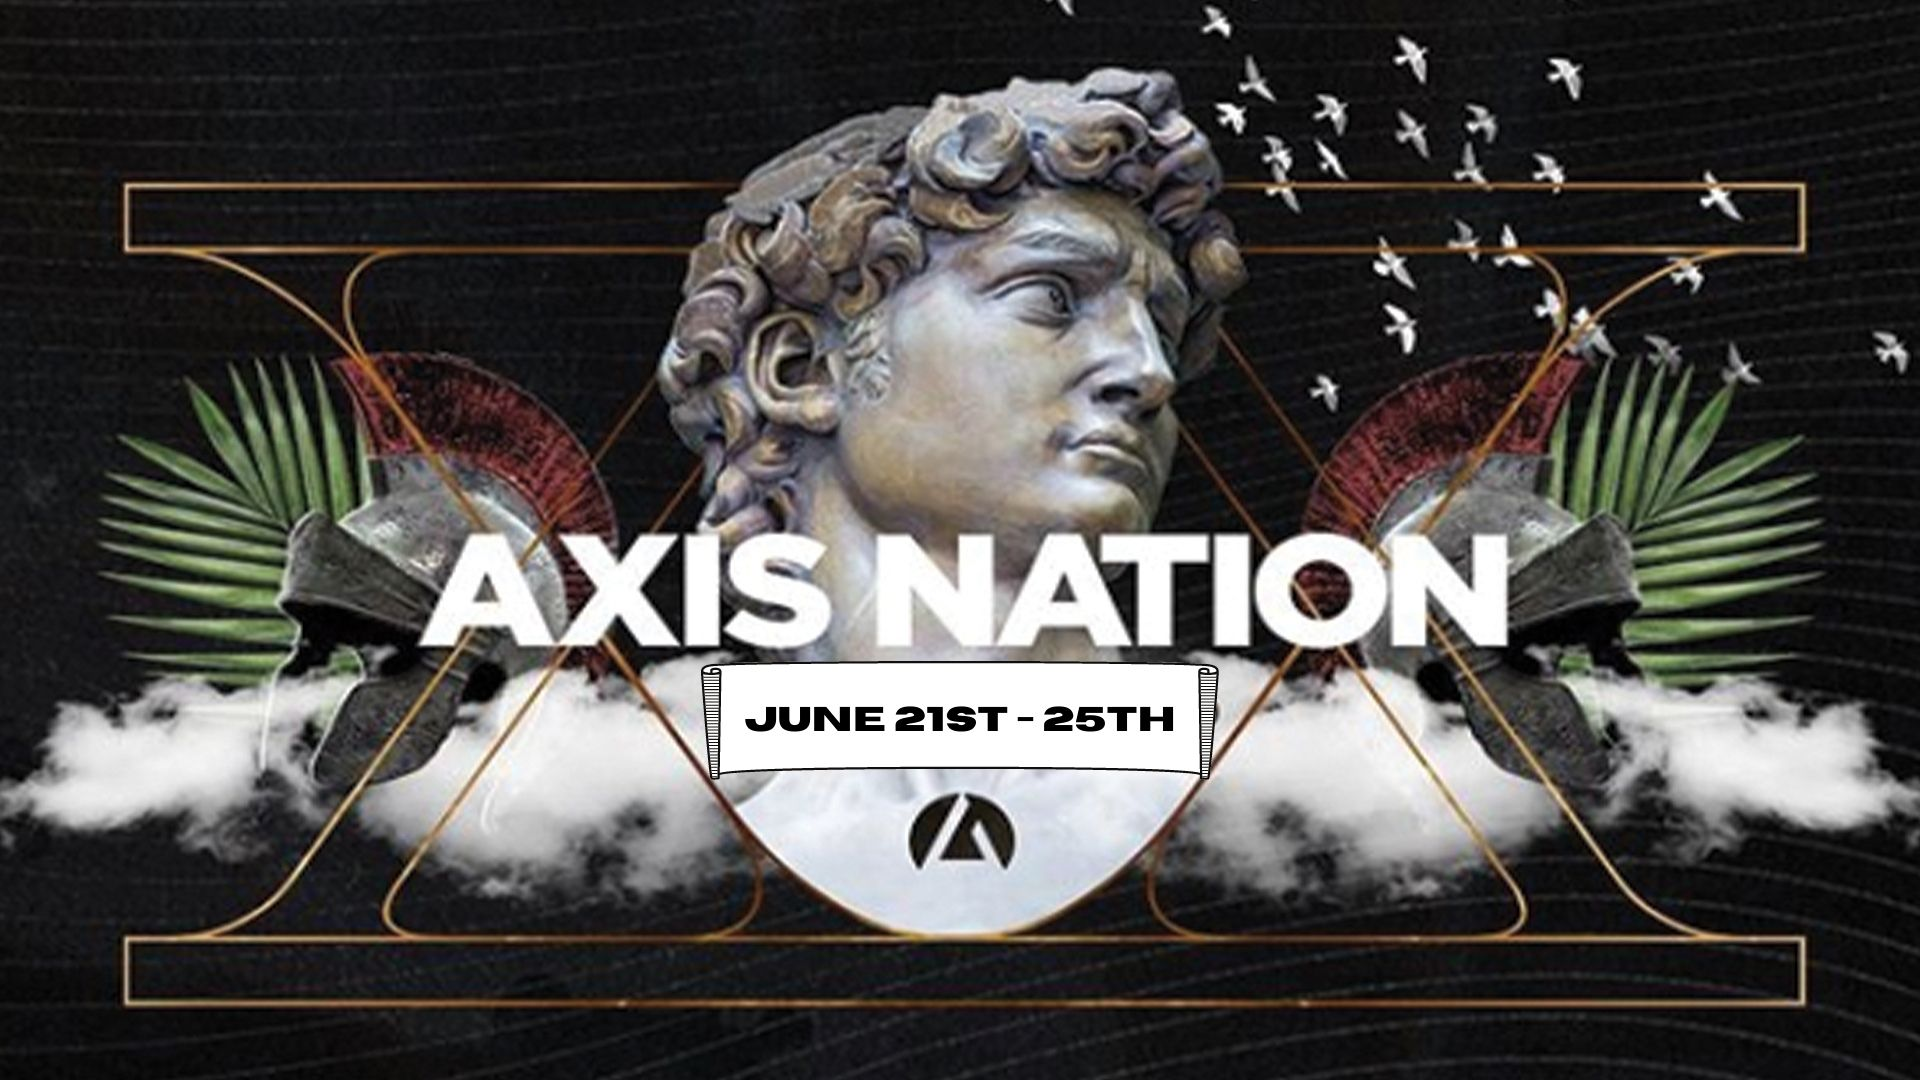 Axis Nation